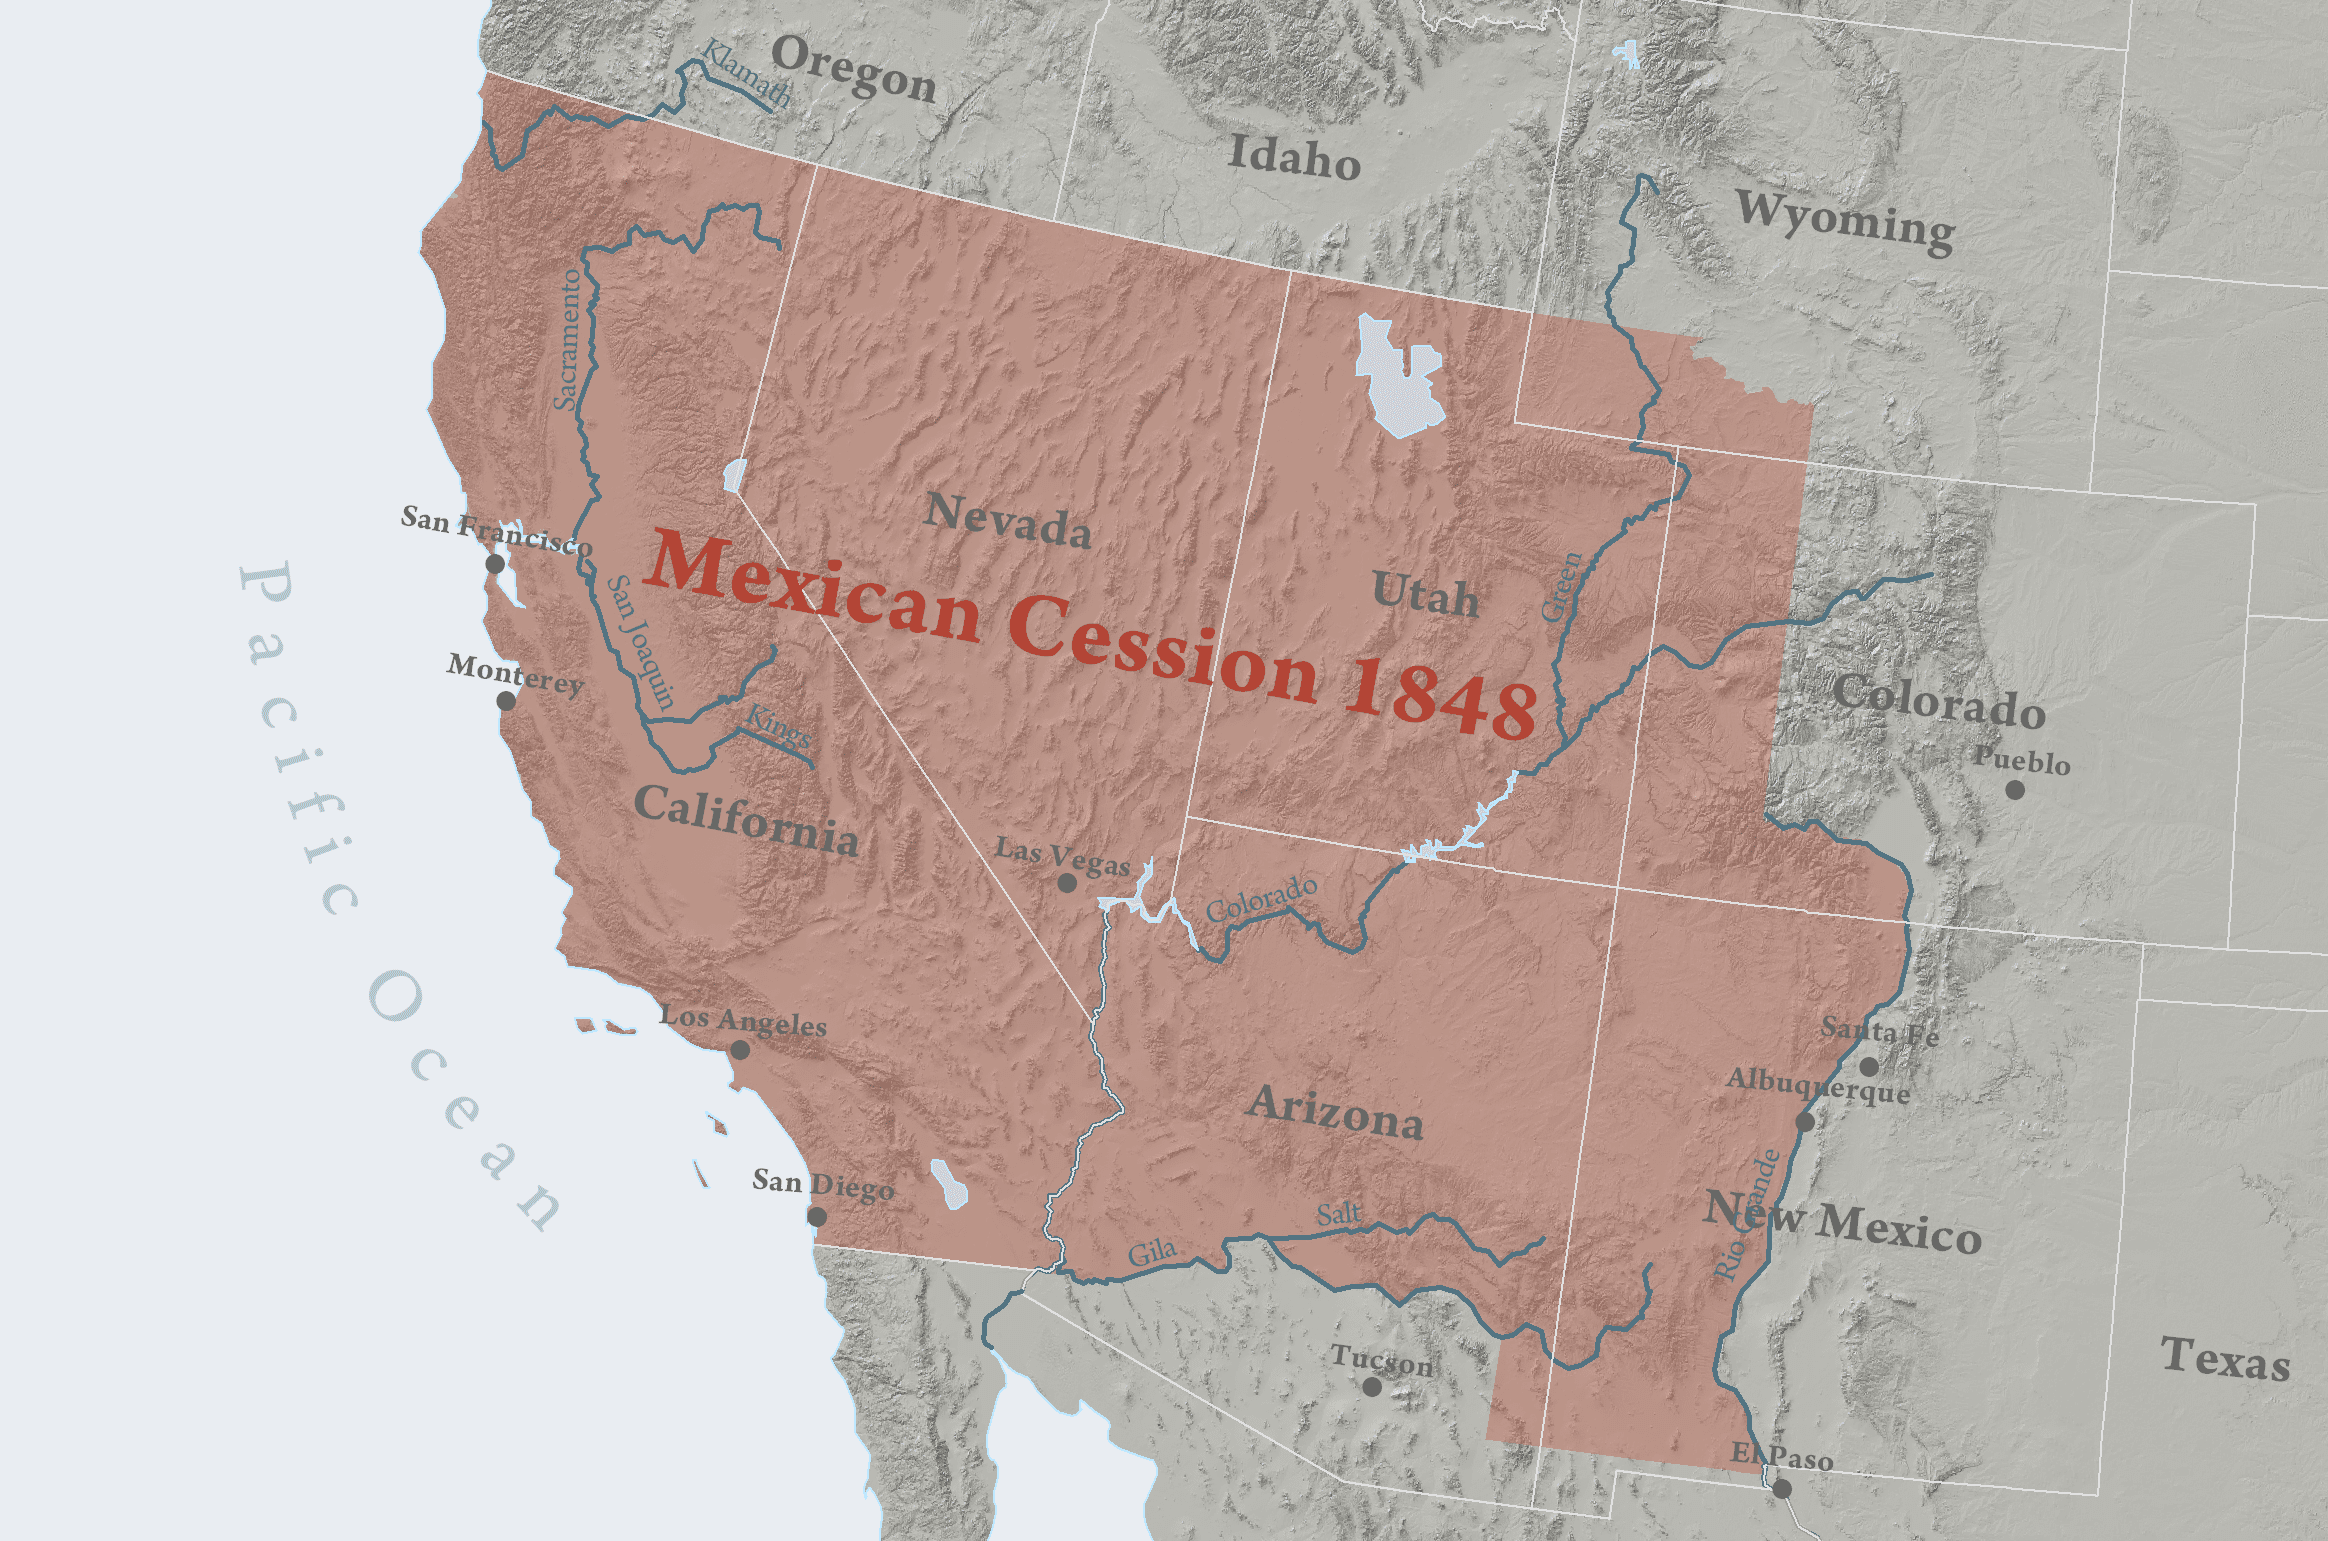 Why Did the Americans Win the MexicanAmerican War